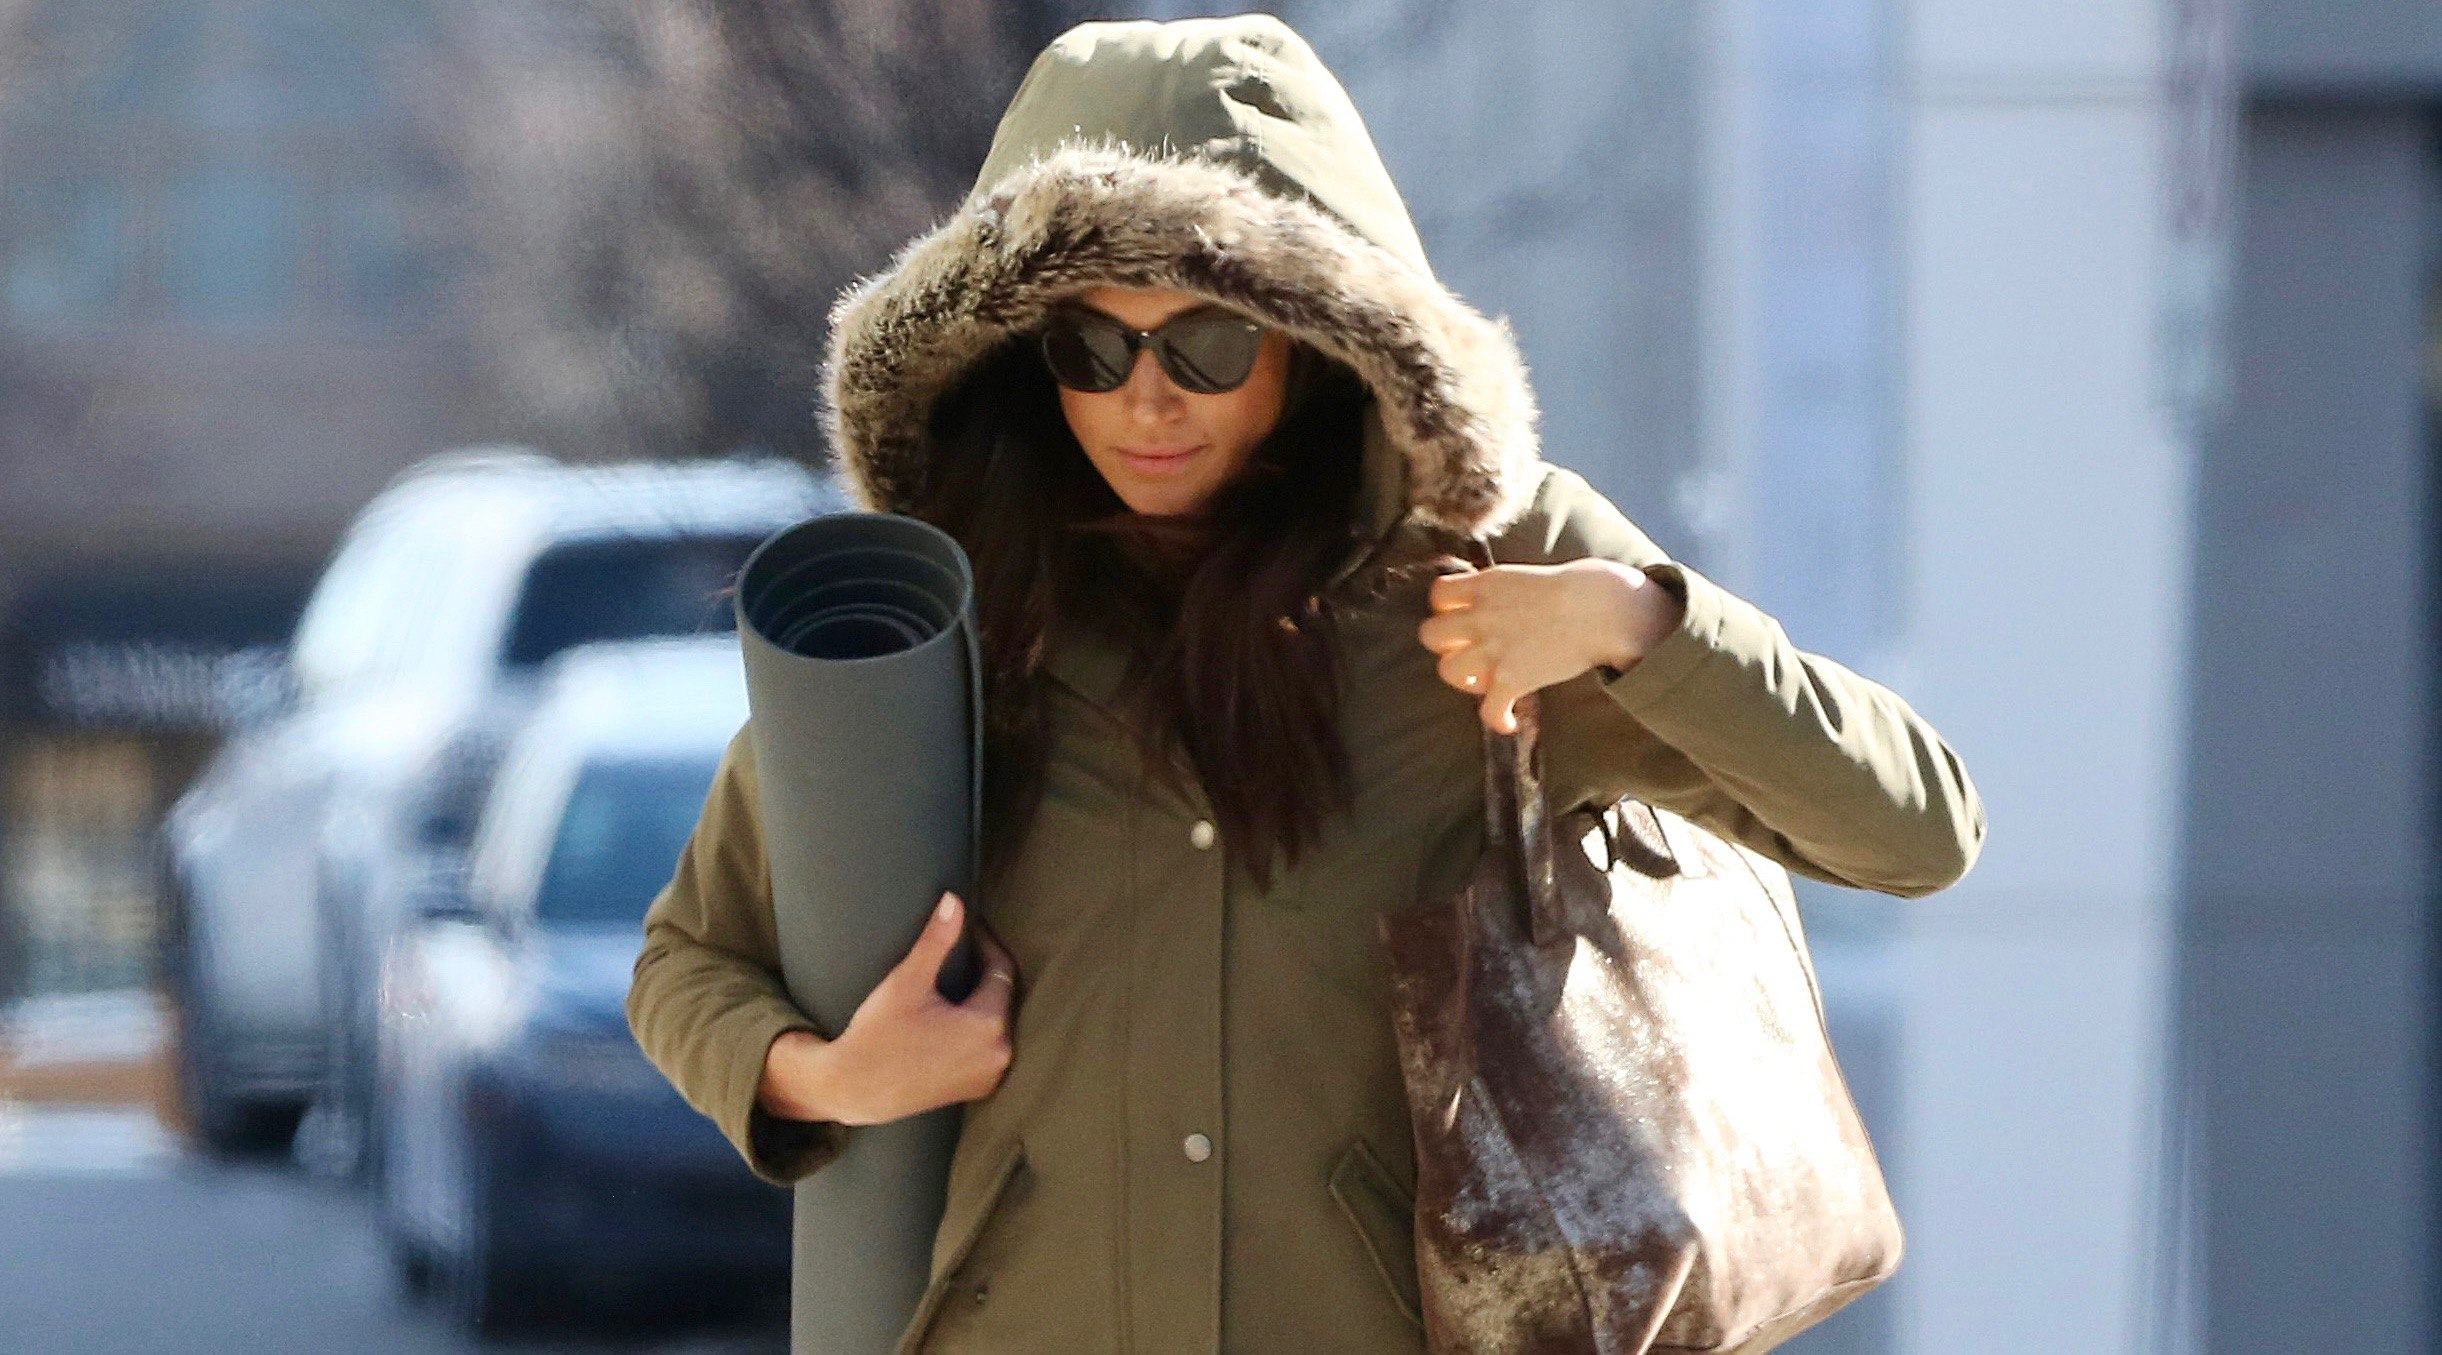 Meghan Markle spotted for first time in Toronto since going to Jamaica with Prince Harry (PHOTOS)